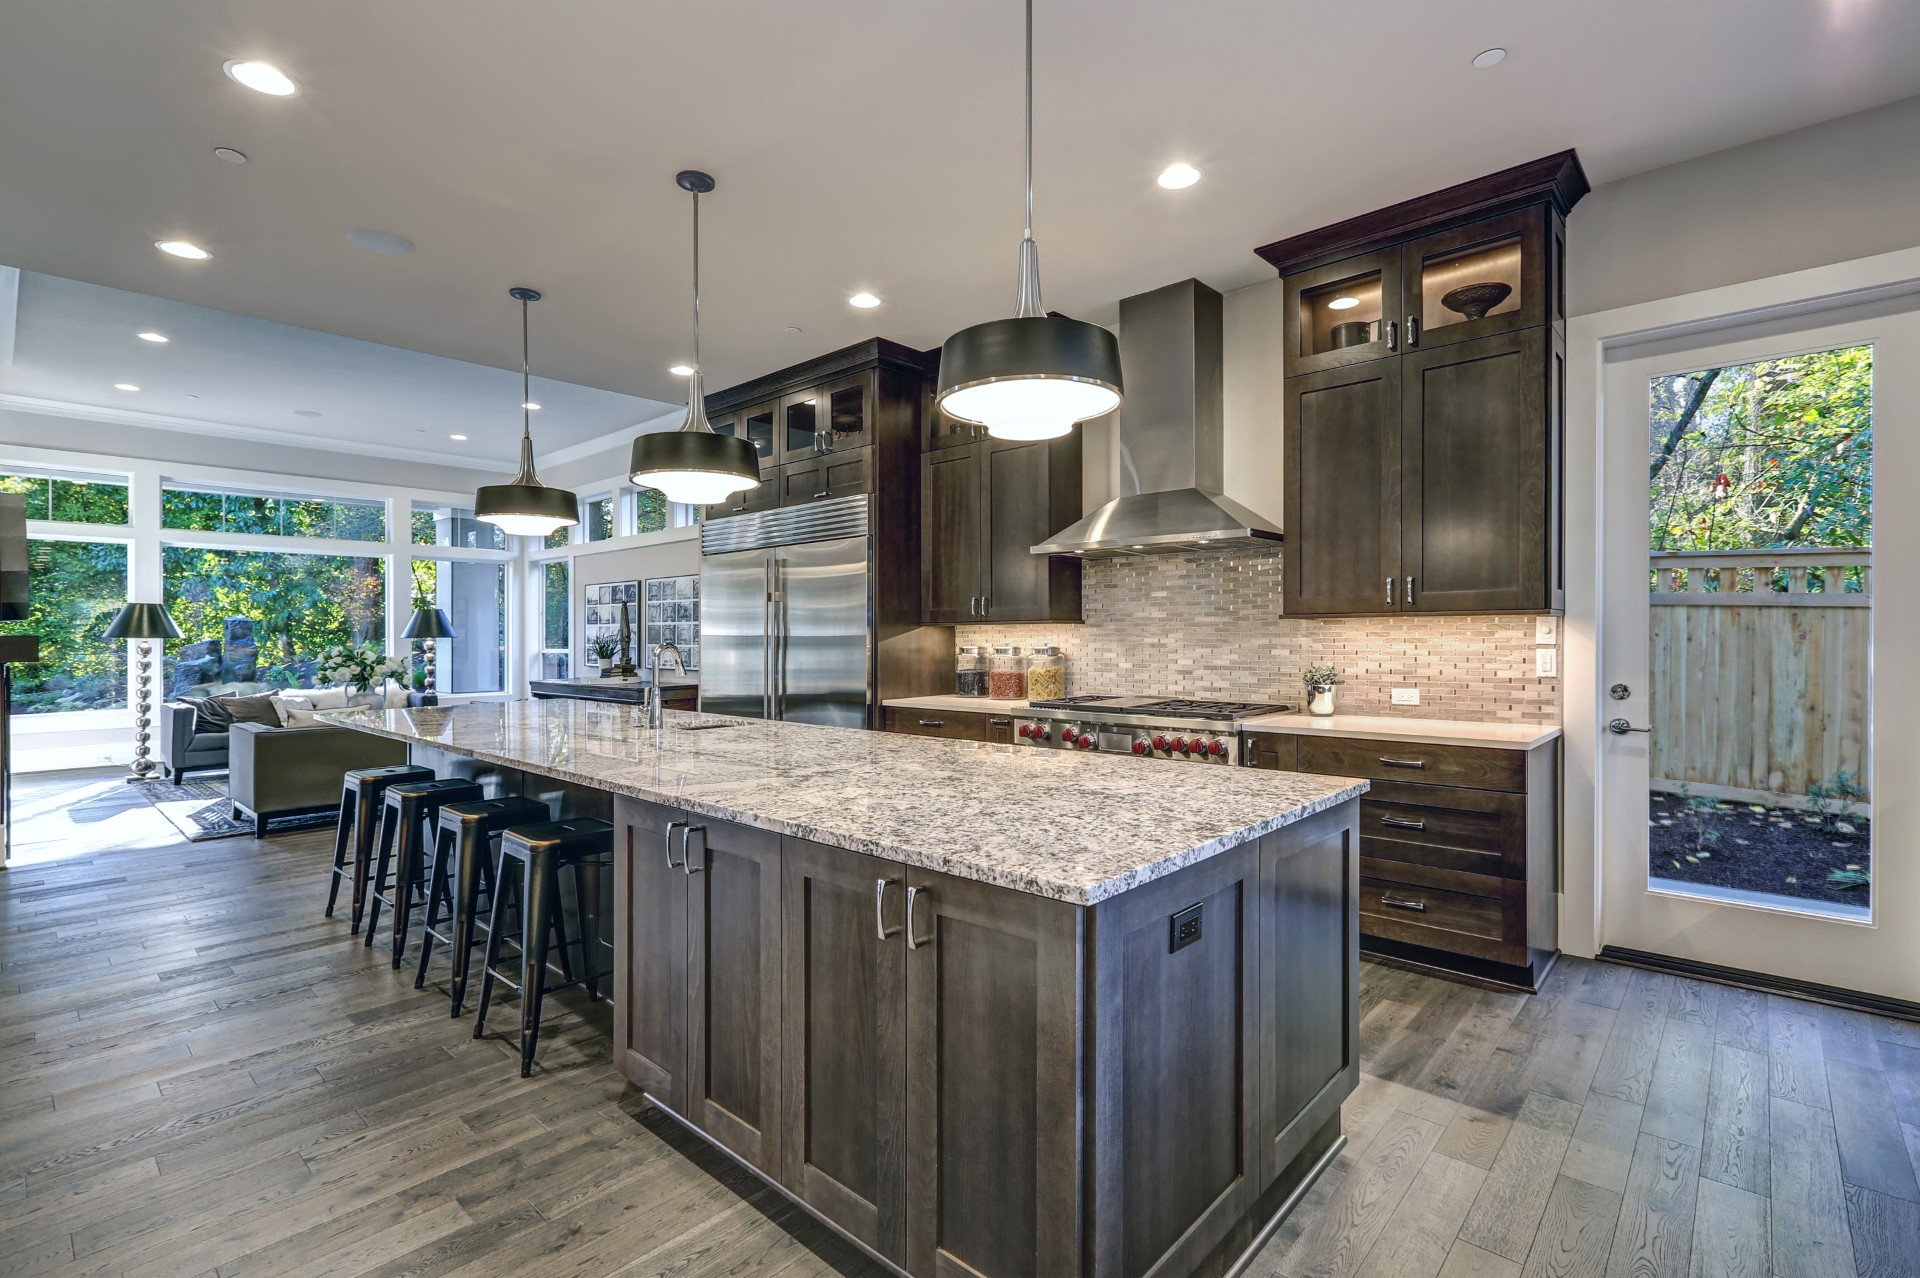 A kitchen with adequate lighting is crucial to any dark colors. When you carefully space recessed lights to optimize the luminescence of your kitchen, it starts to become hypnagogic as nature fills the atmosphere of this peaceful area.